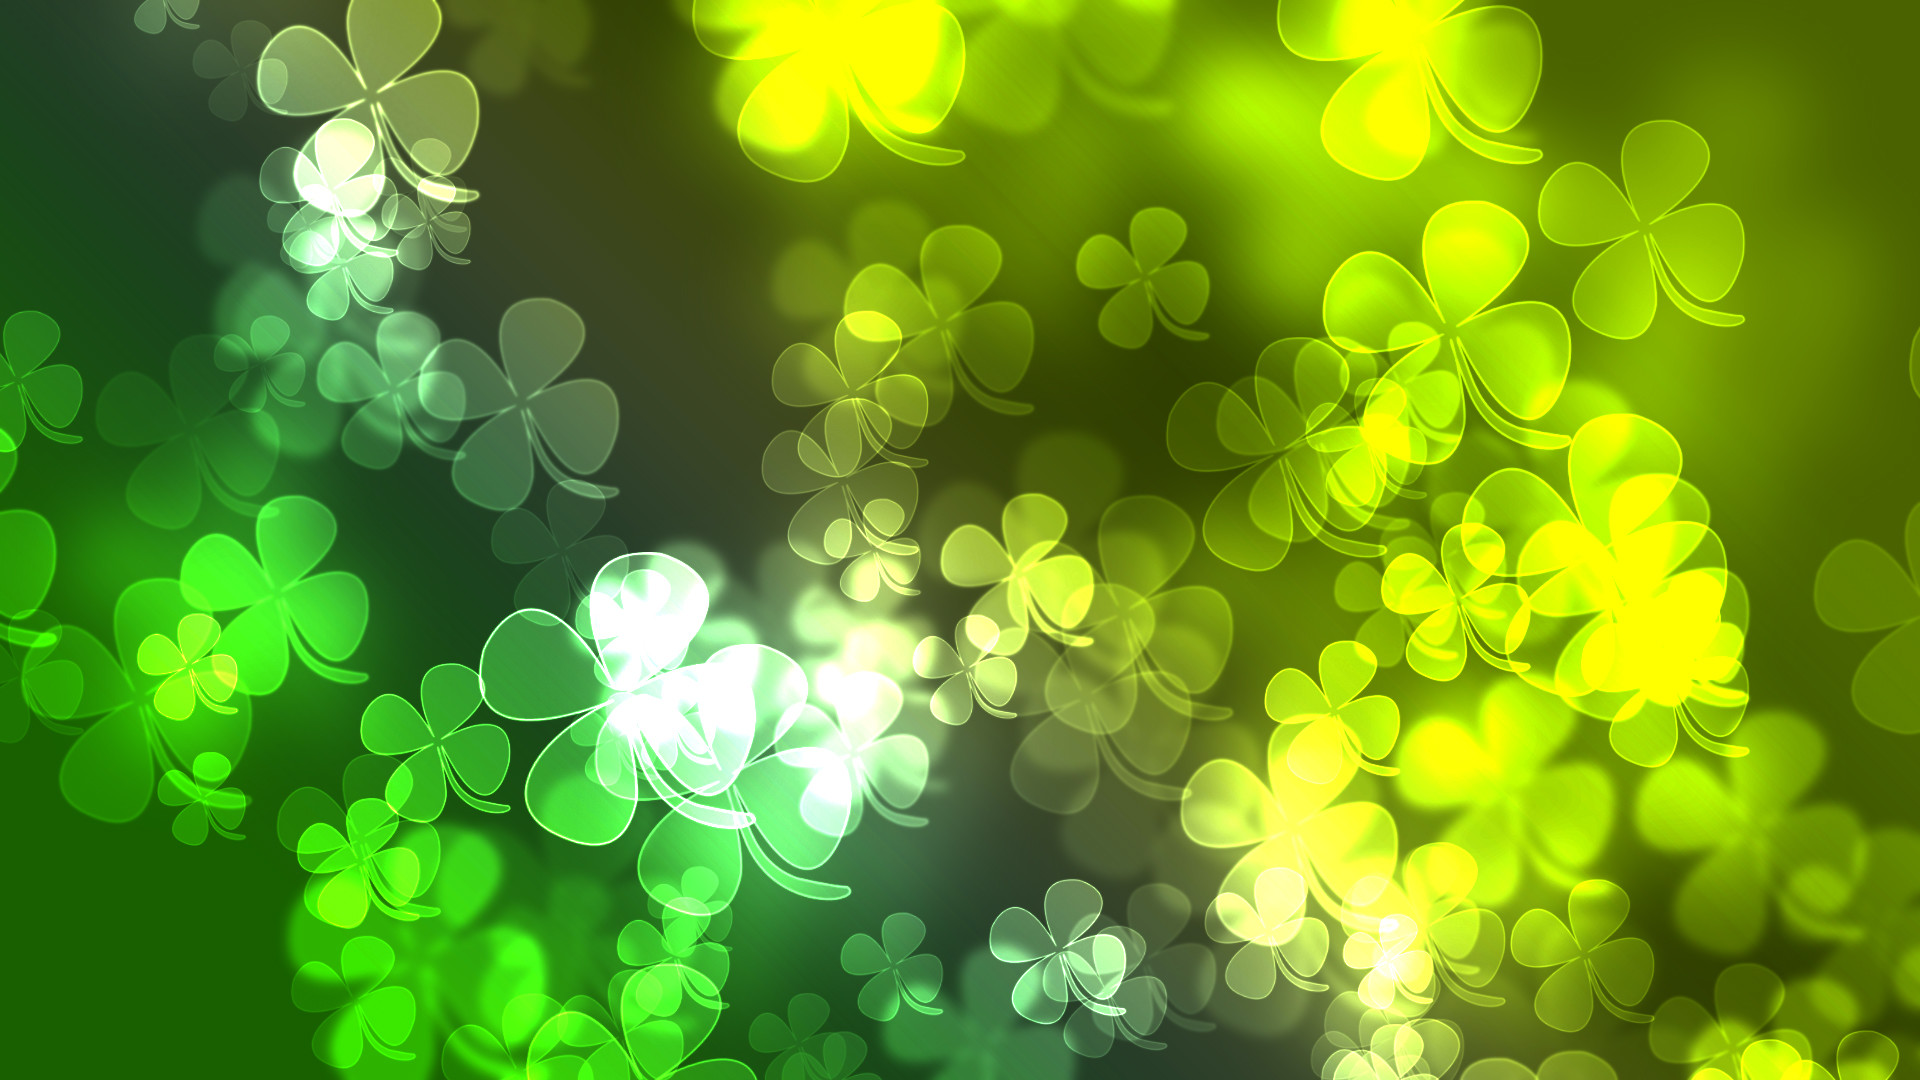 1920x1080 day shamrock bokeh wallpaper by saphira wine customization wallpaper .